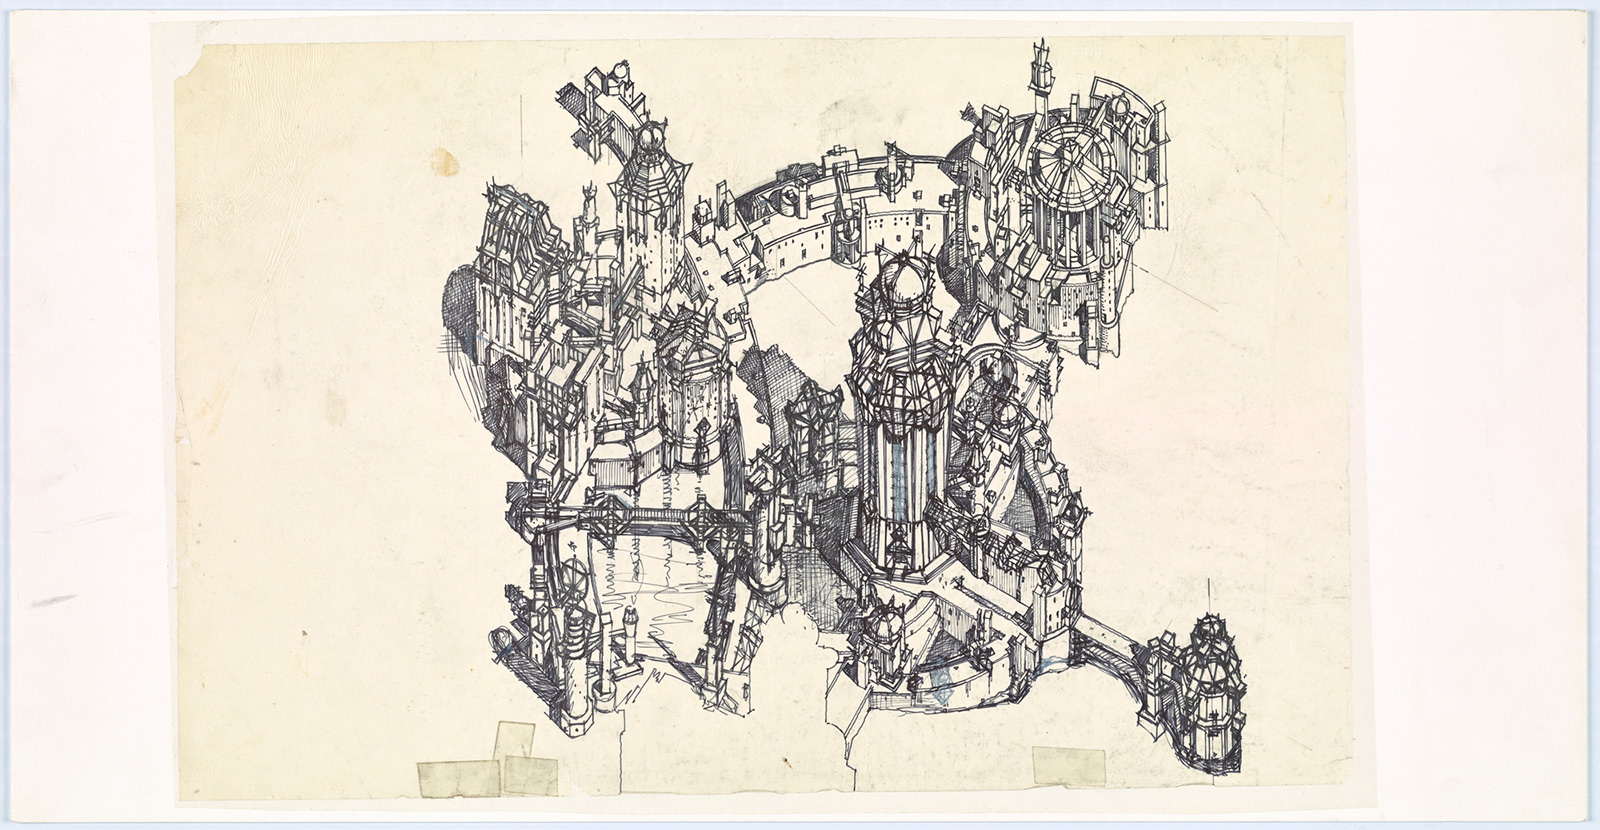 Intricate sketch of a walled city